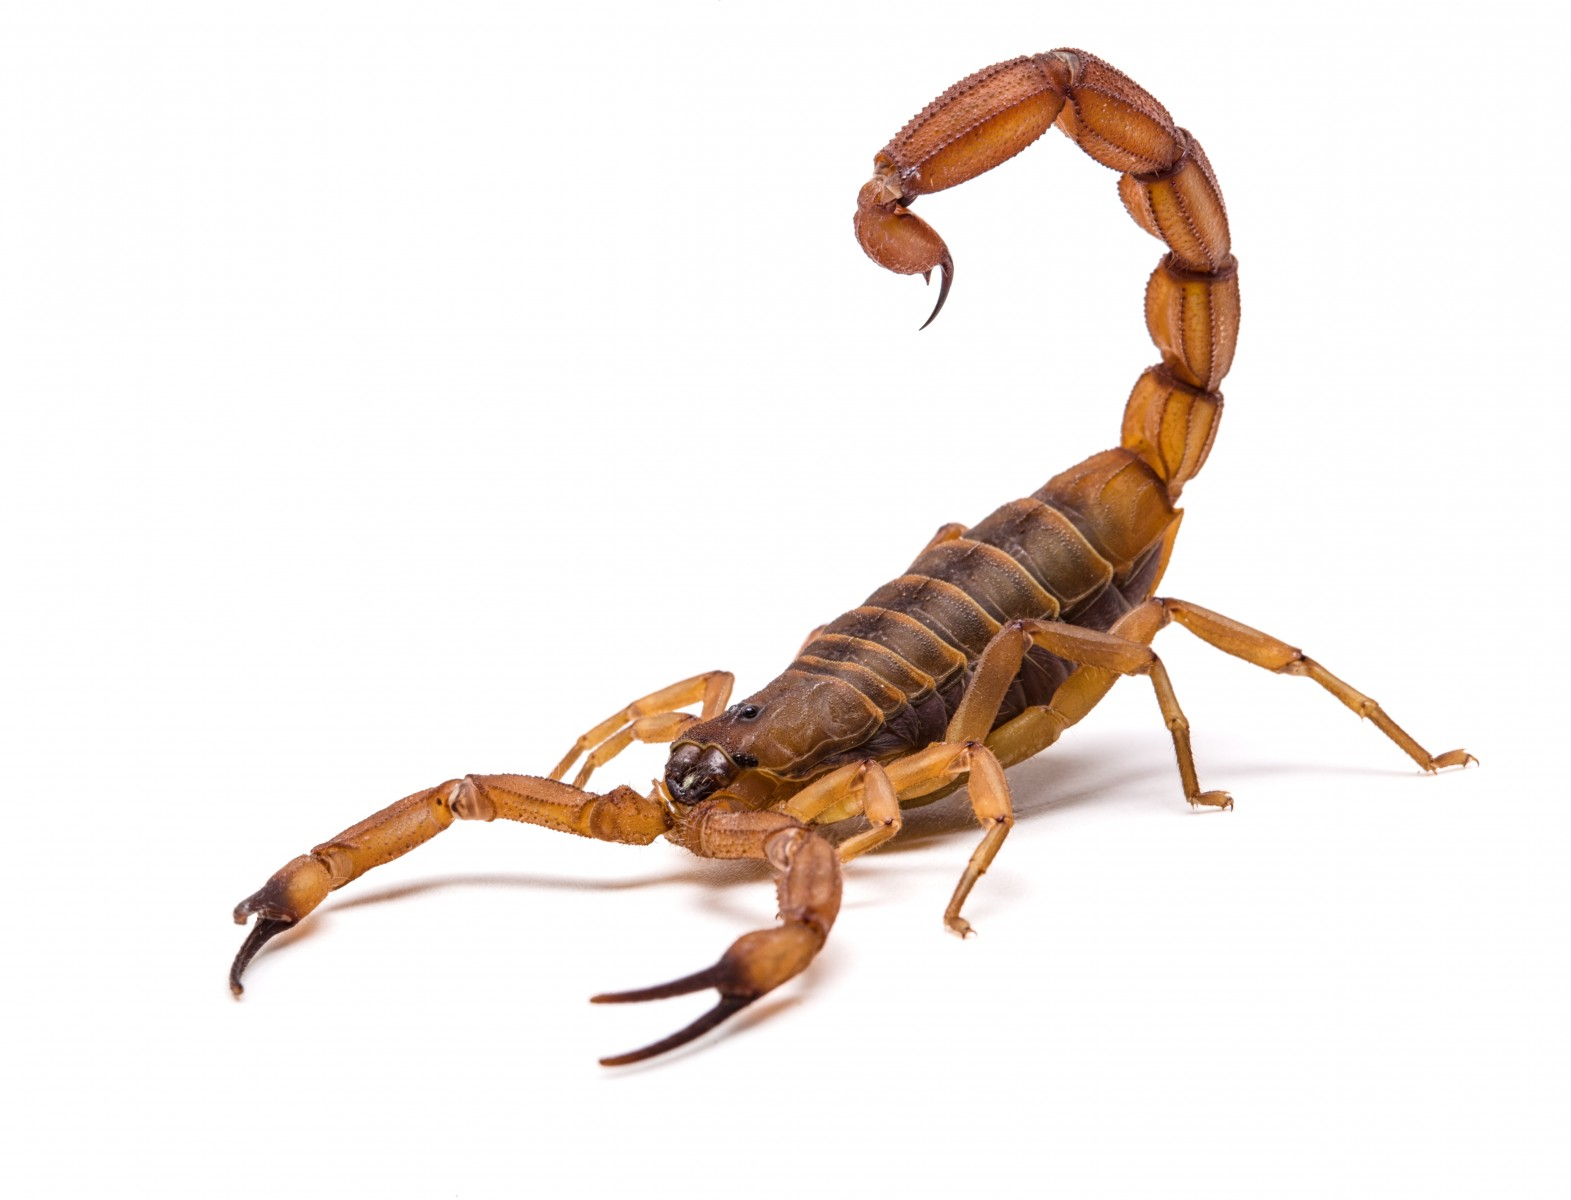 Scientists have discovered the oldest-known scorpion--likely one of the first animals to walk on land--in a fossil unearthed in Wisconsin.